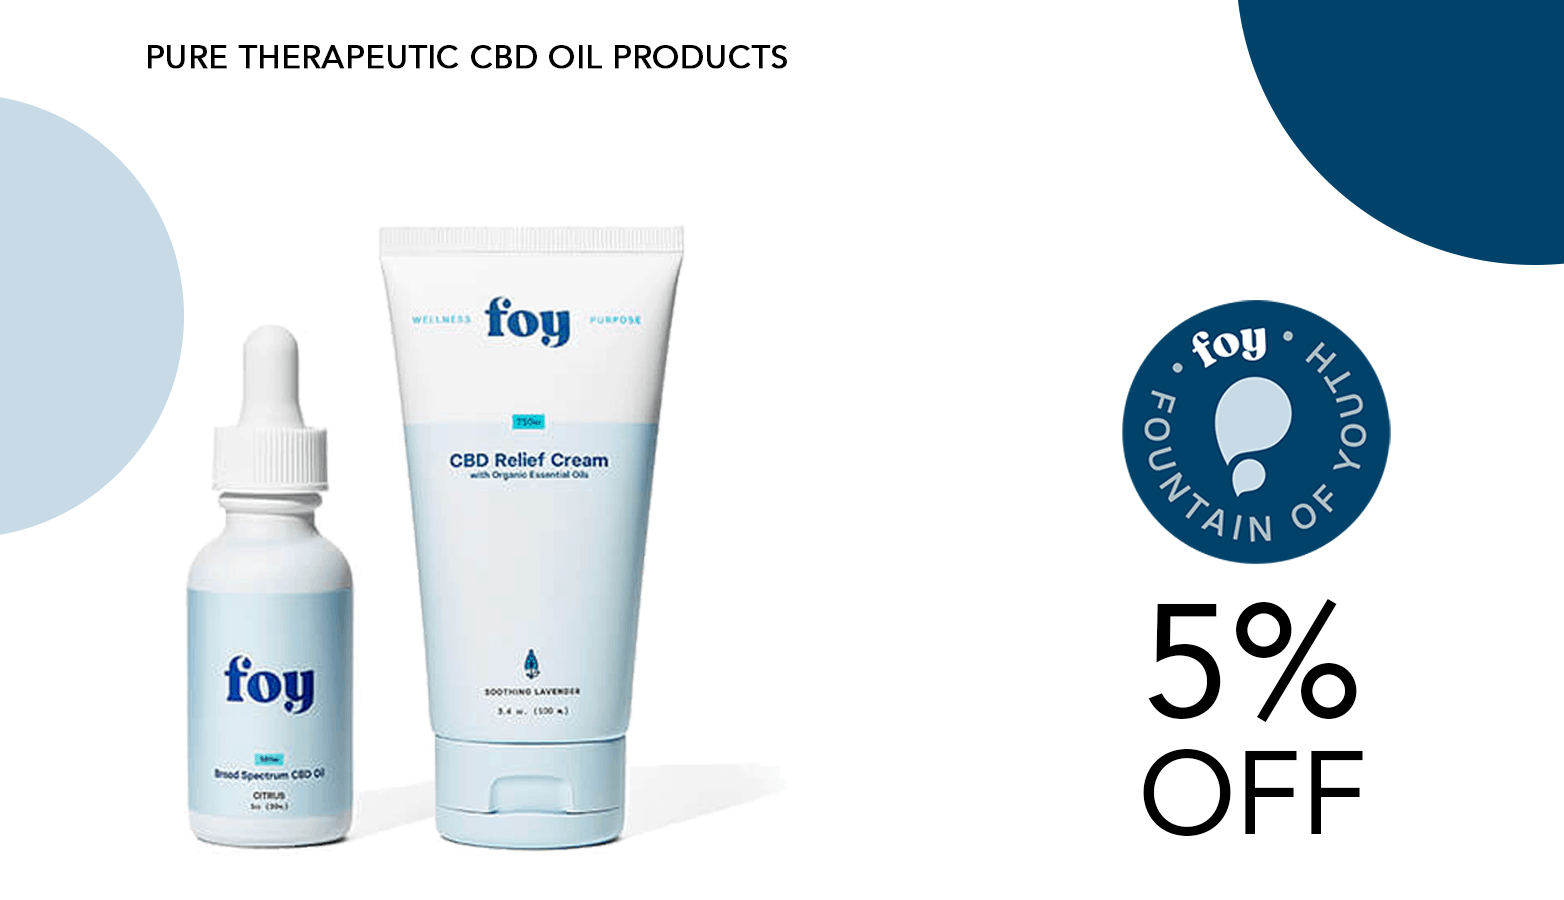 Foy CBD Coupon Code Offer Website